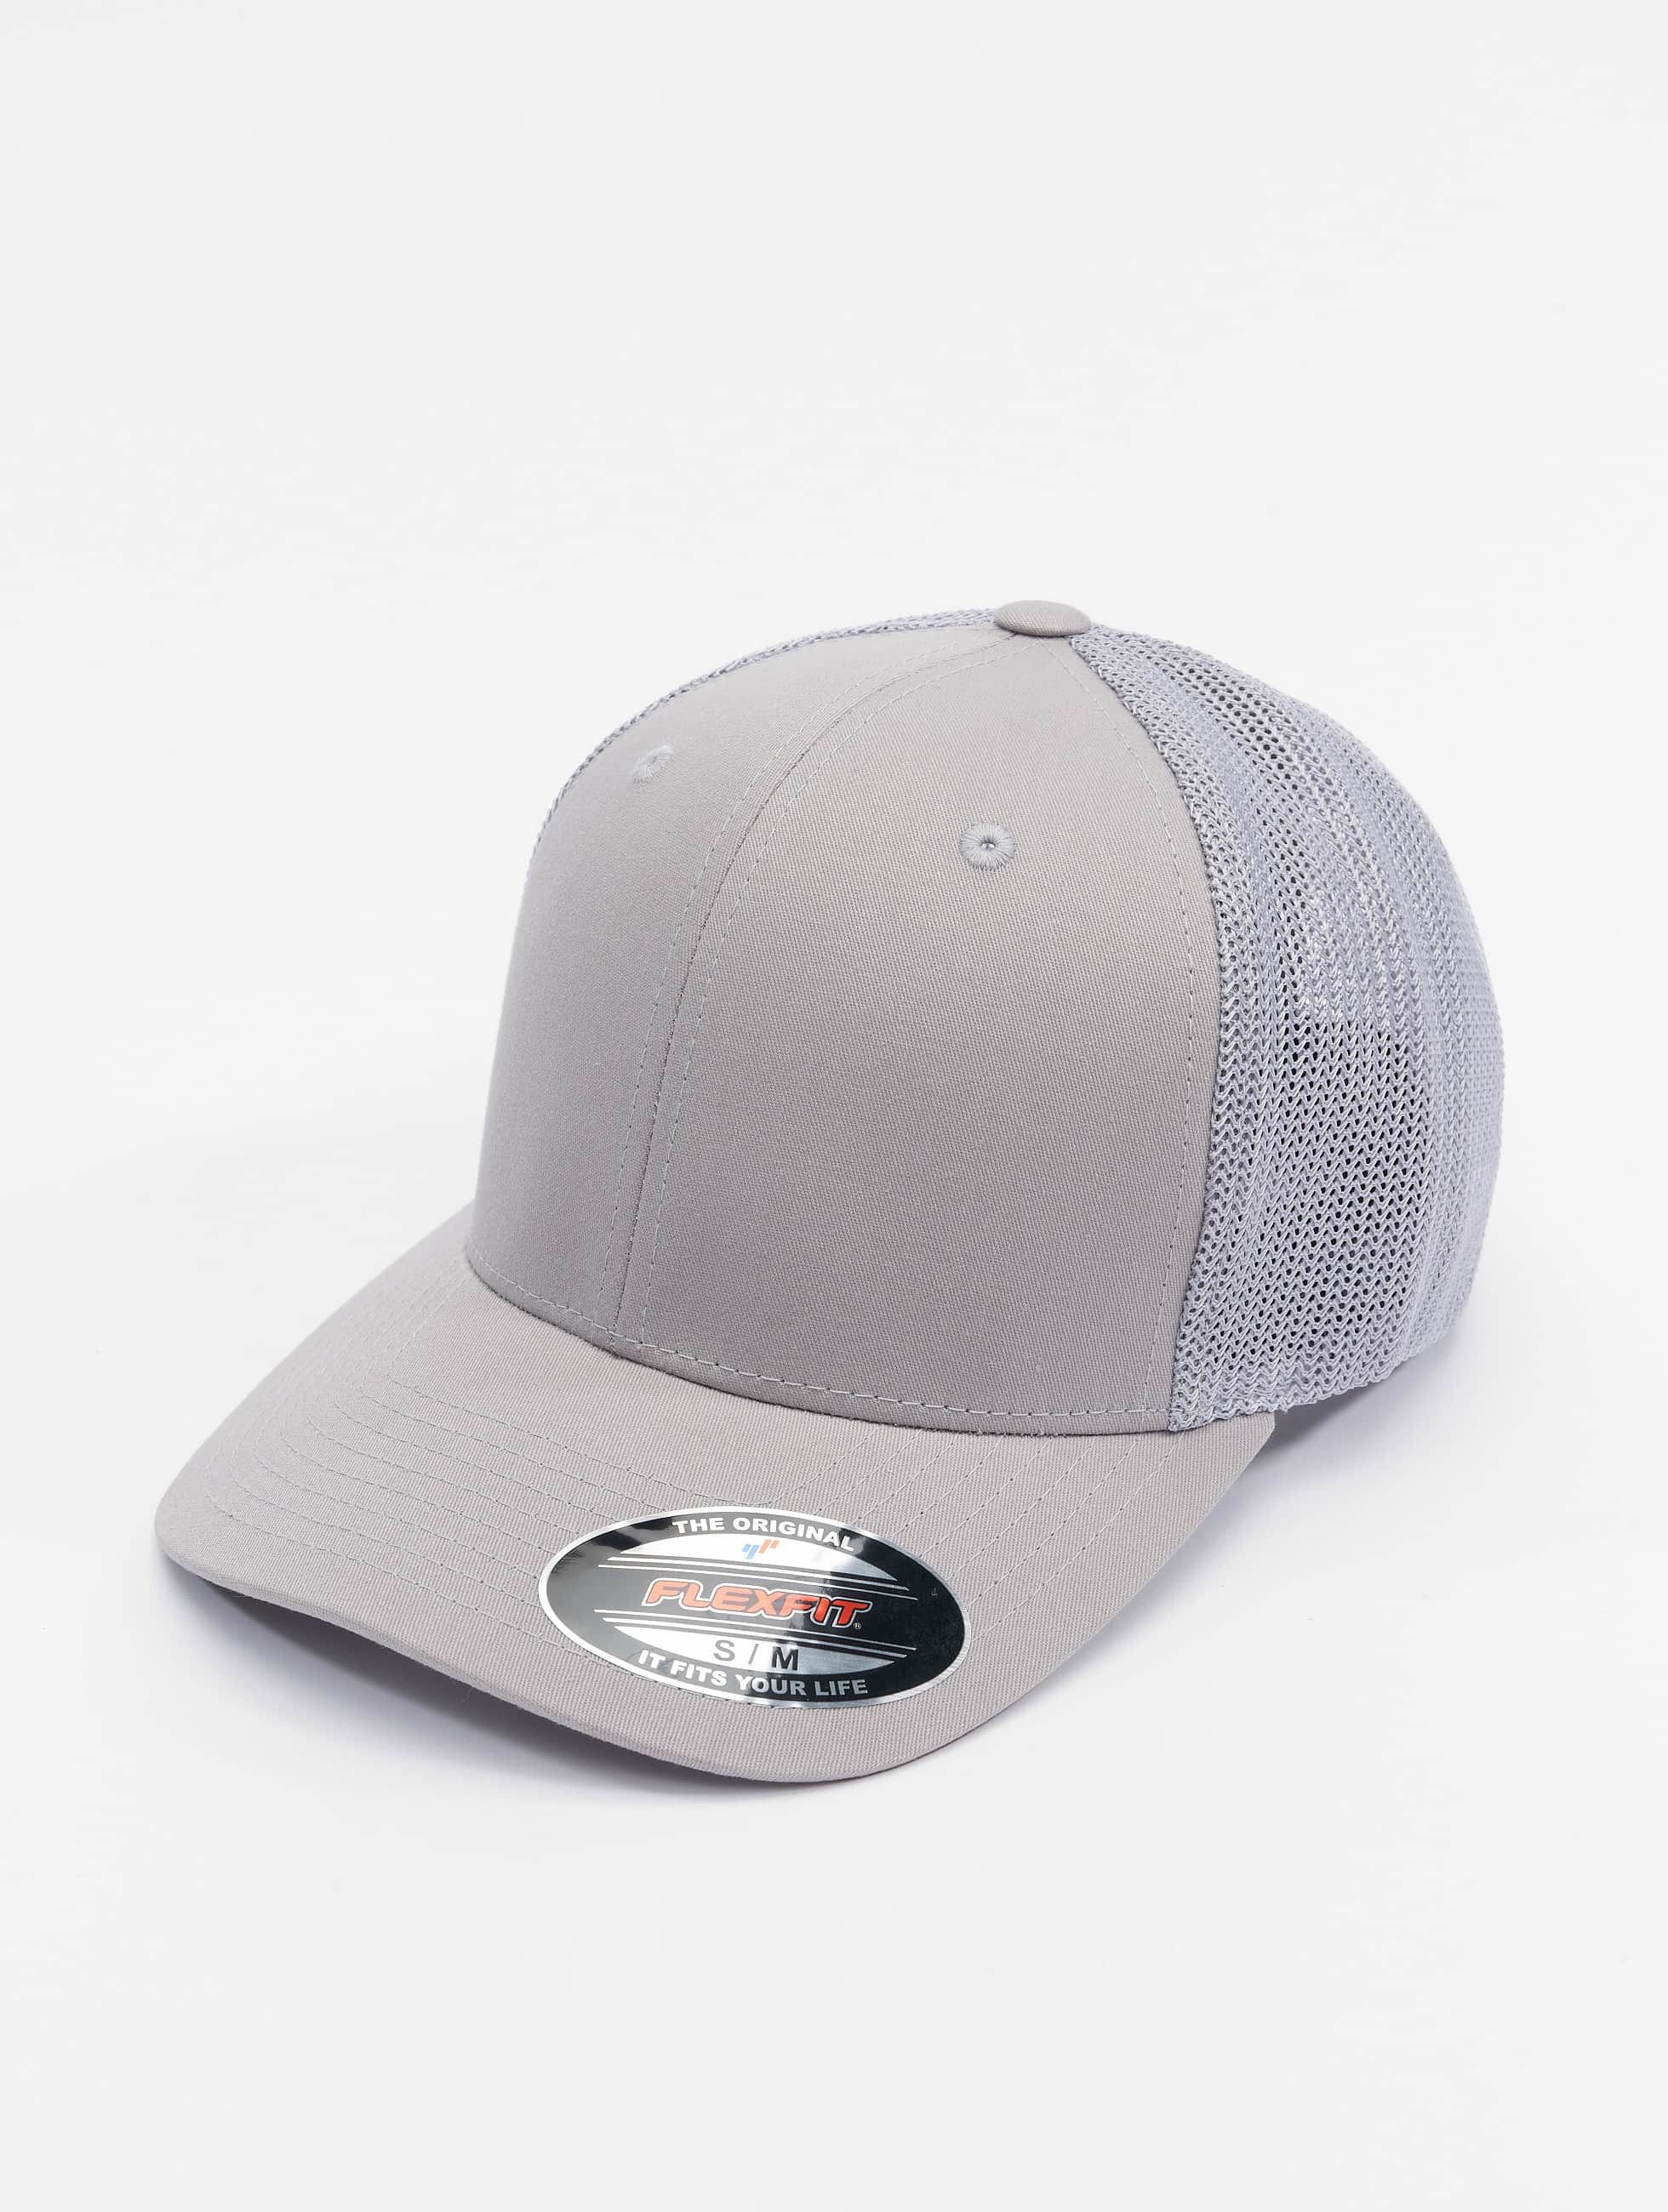 Flexfit Flexfitted Cap Mesh Cotton Twill silver